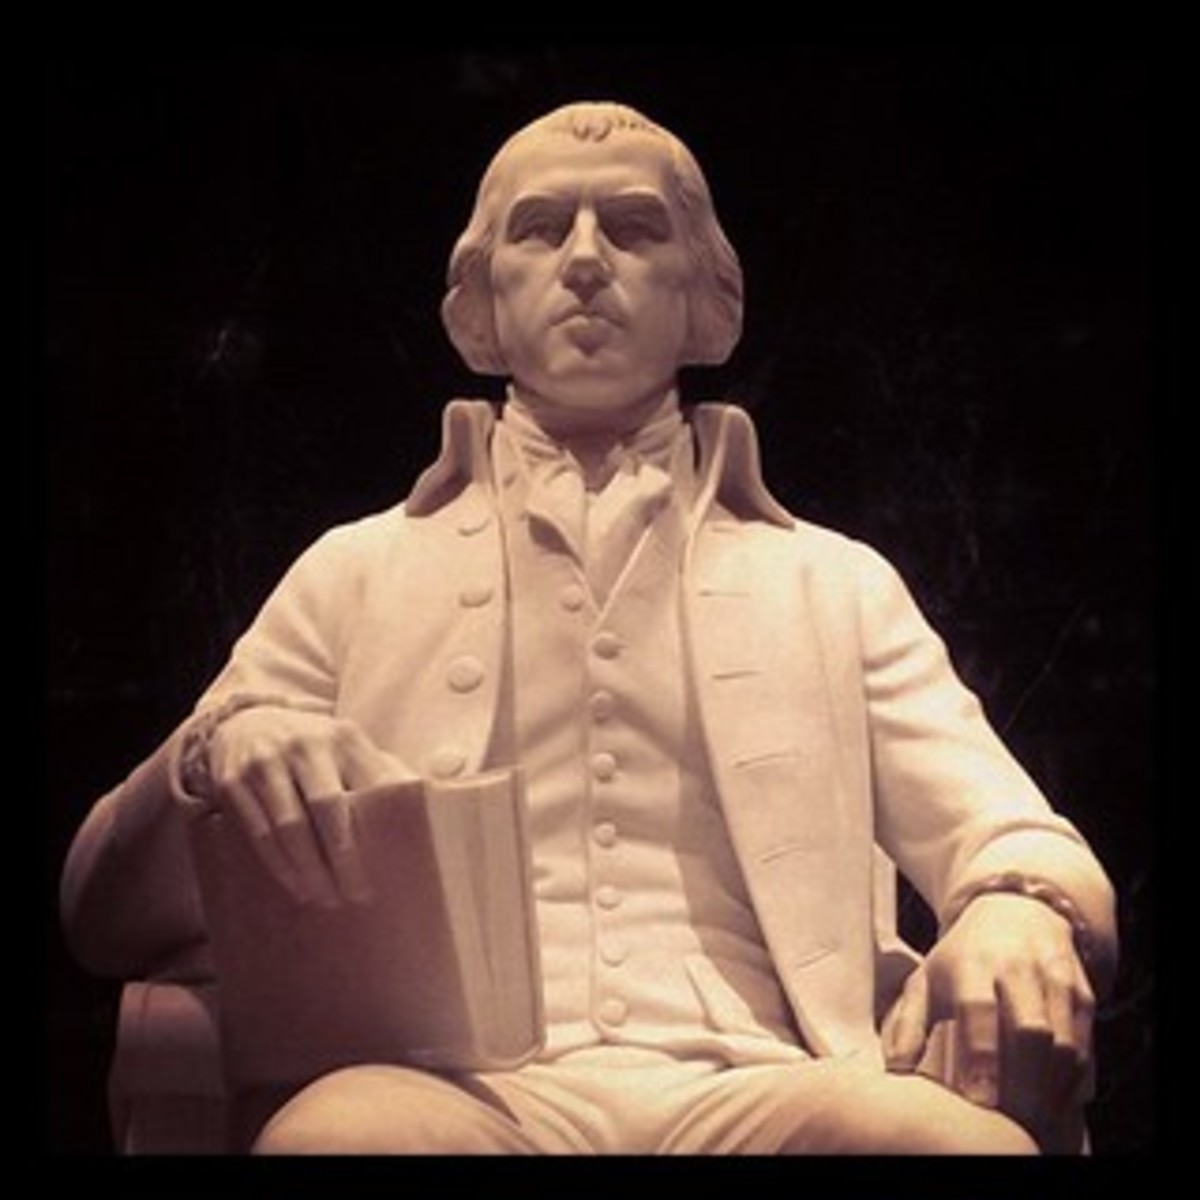 Statute of President James Madison memorial by Walker Hancock is located in the Library of Congress.